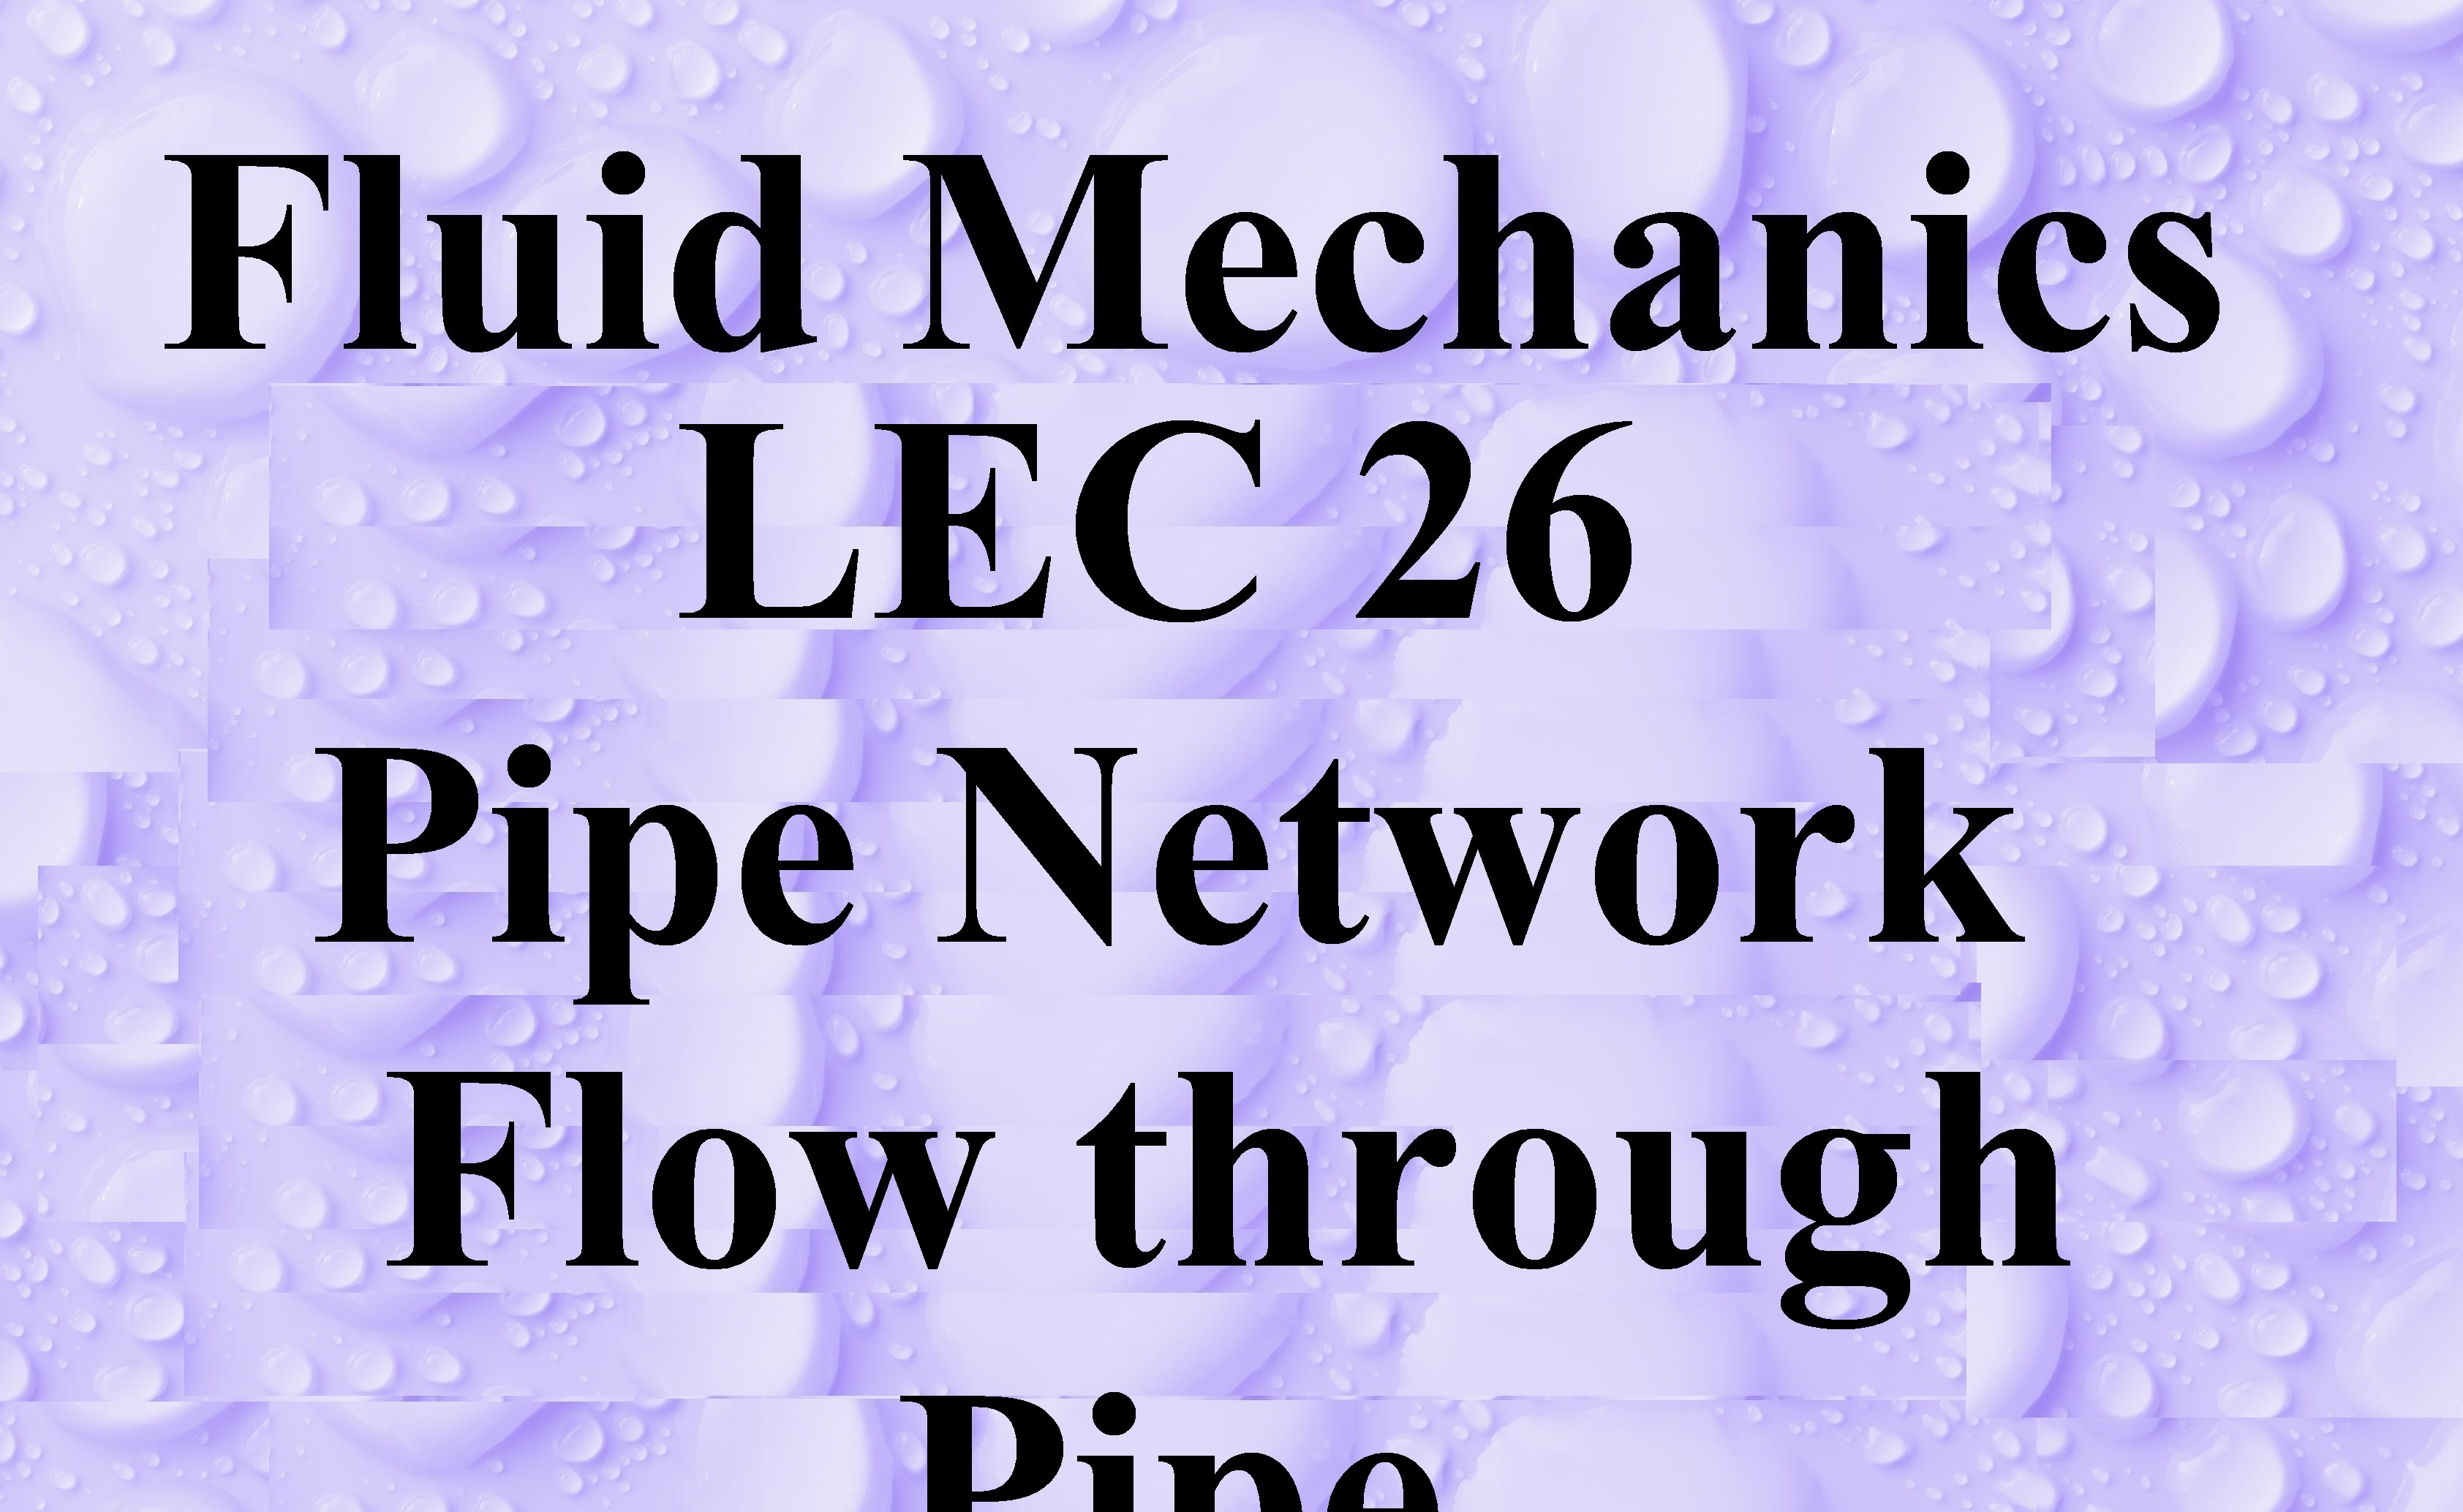 Lec 26 Pipe Networking